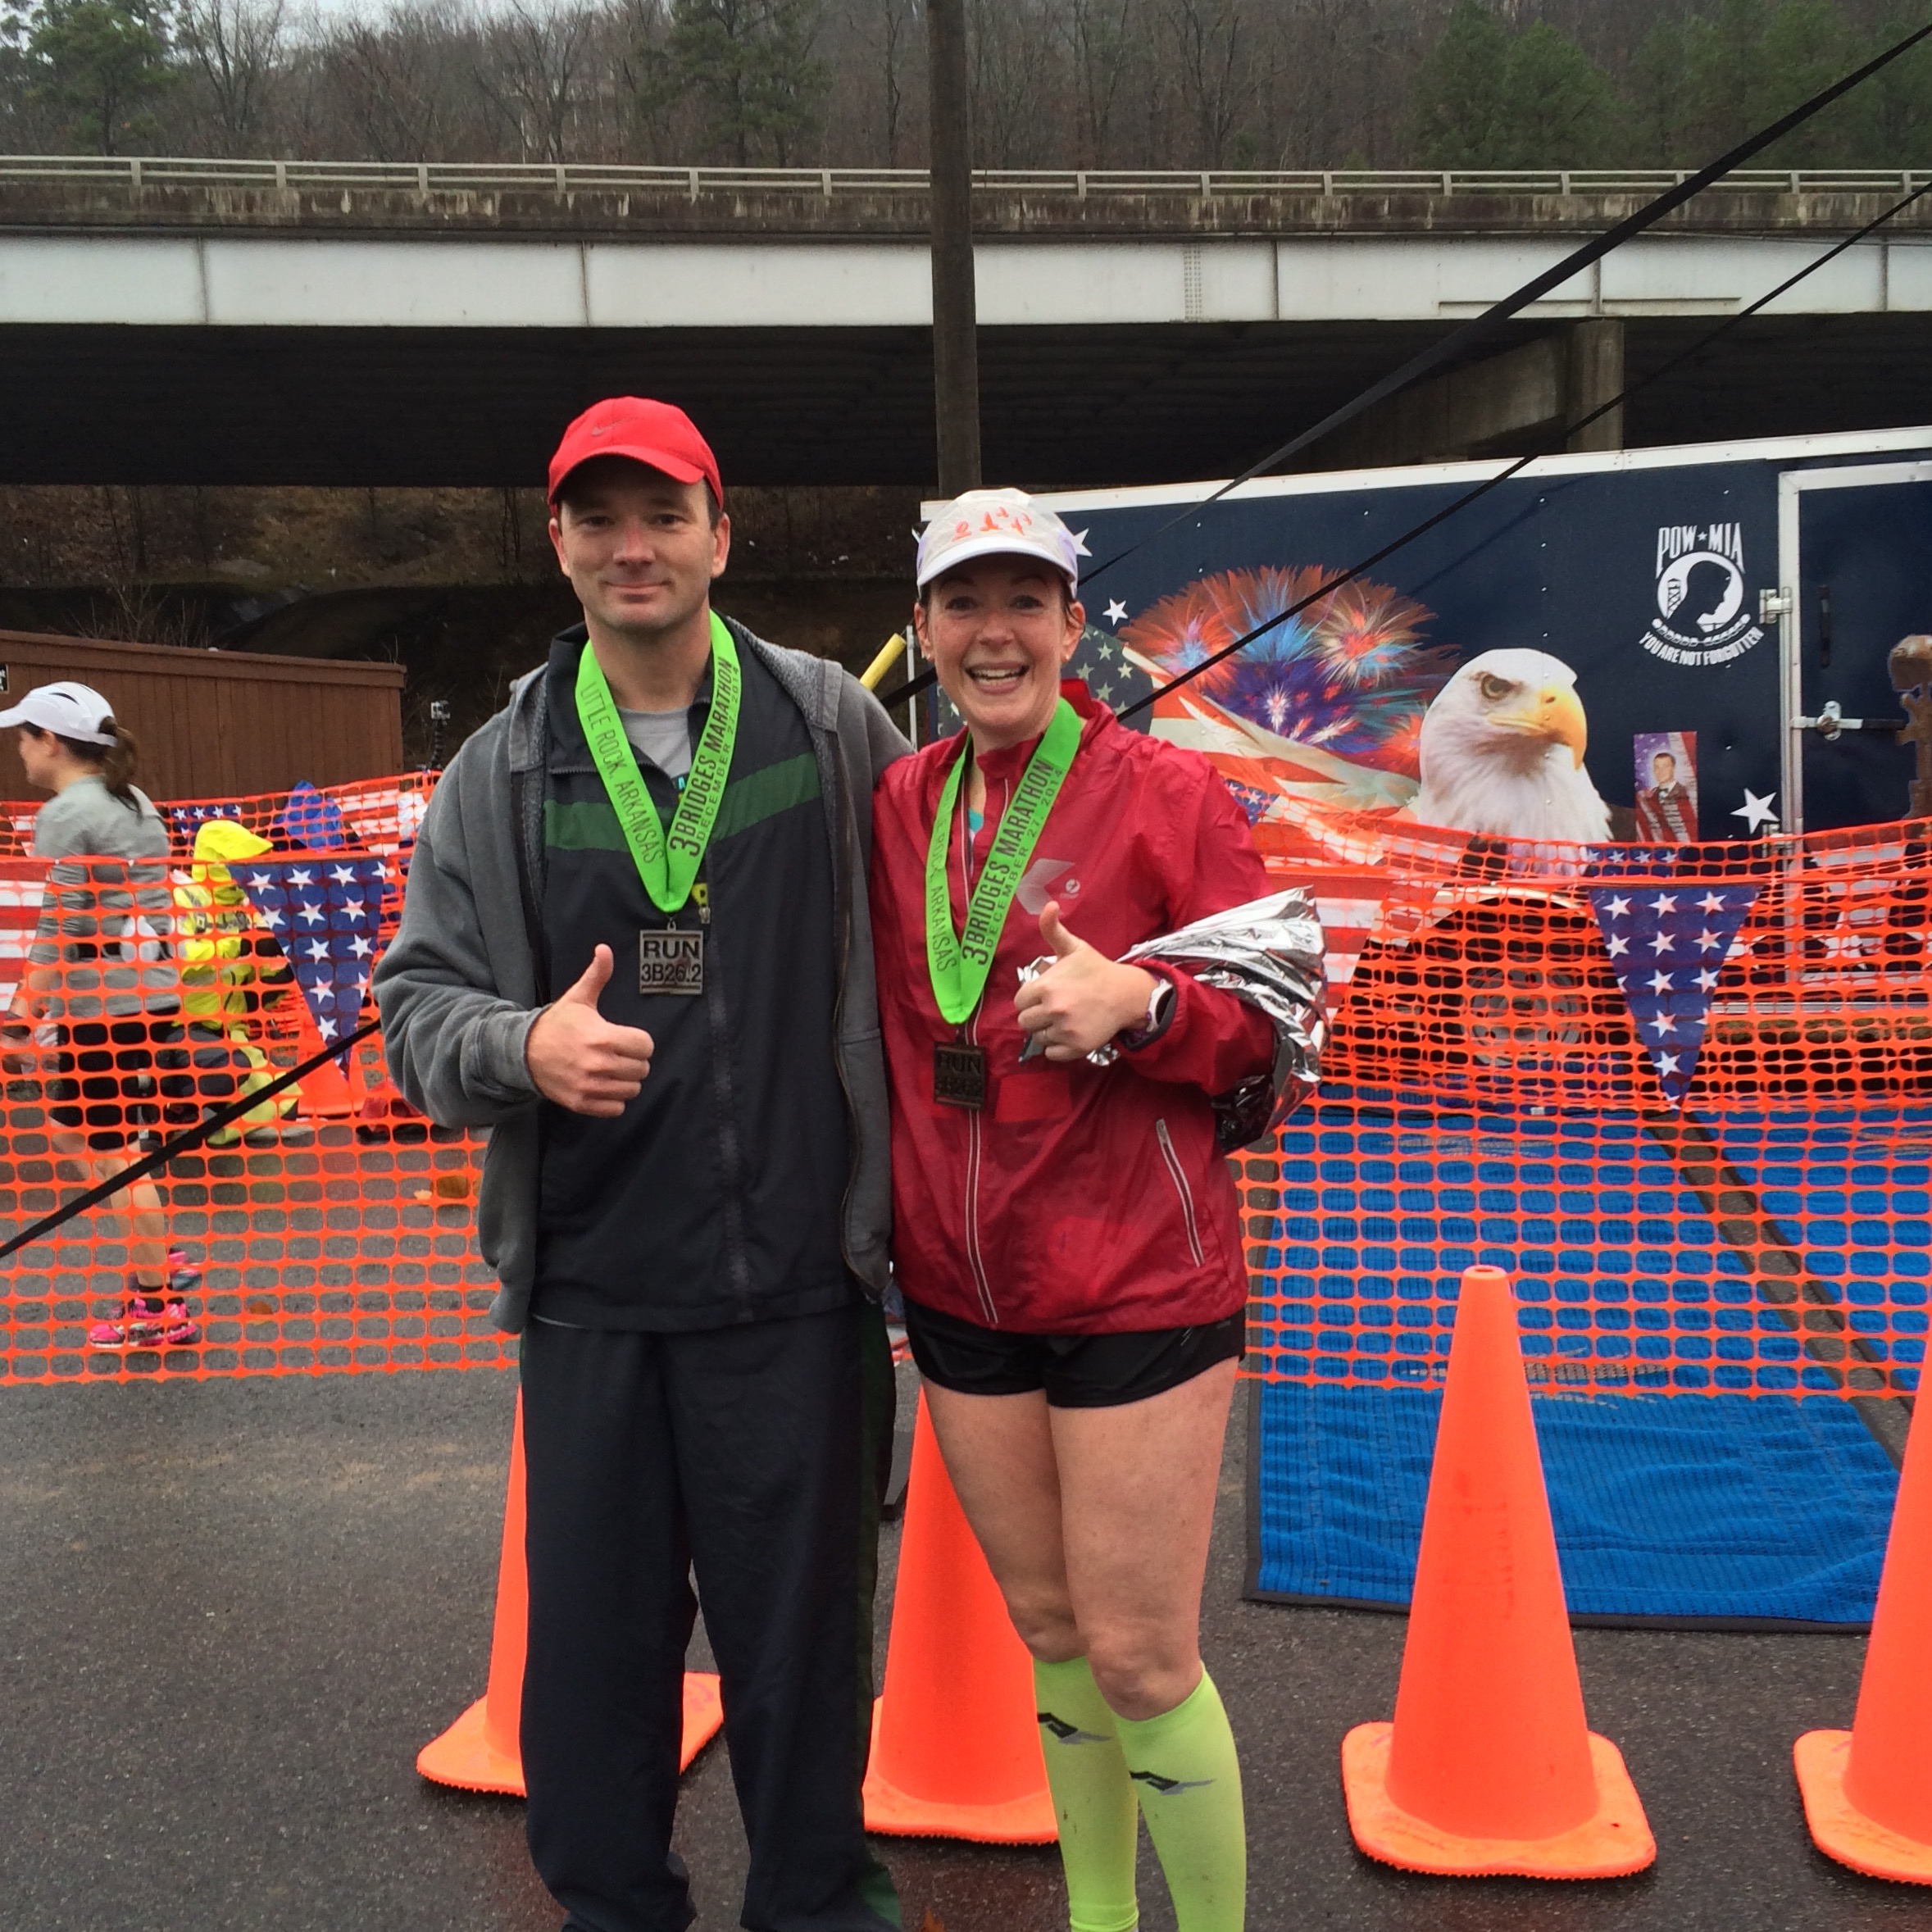 At the finish line of my first marathon, the 2014 Jacob Wells 3 Bridges Marathon, with Chris.